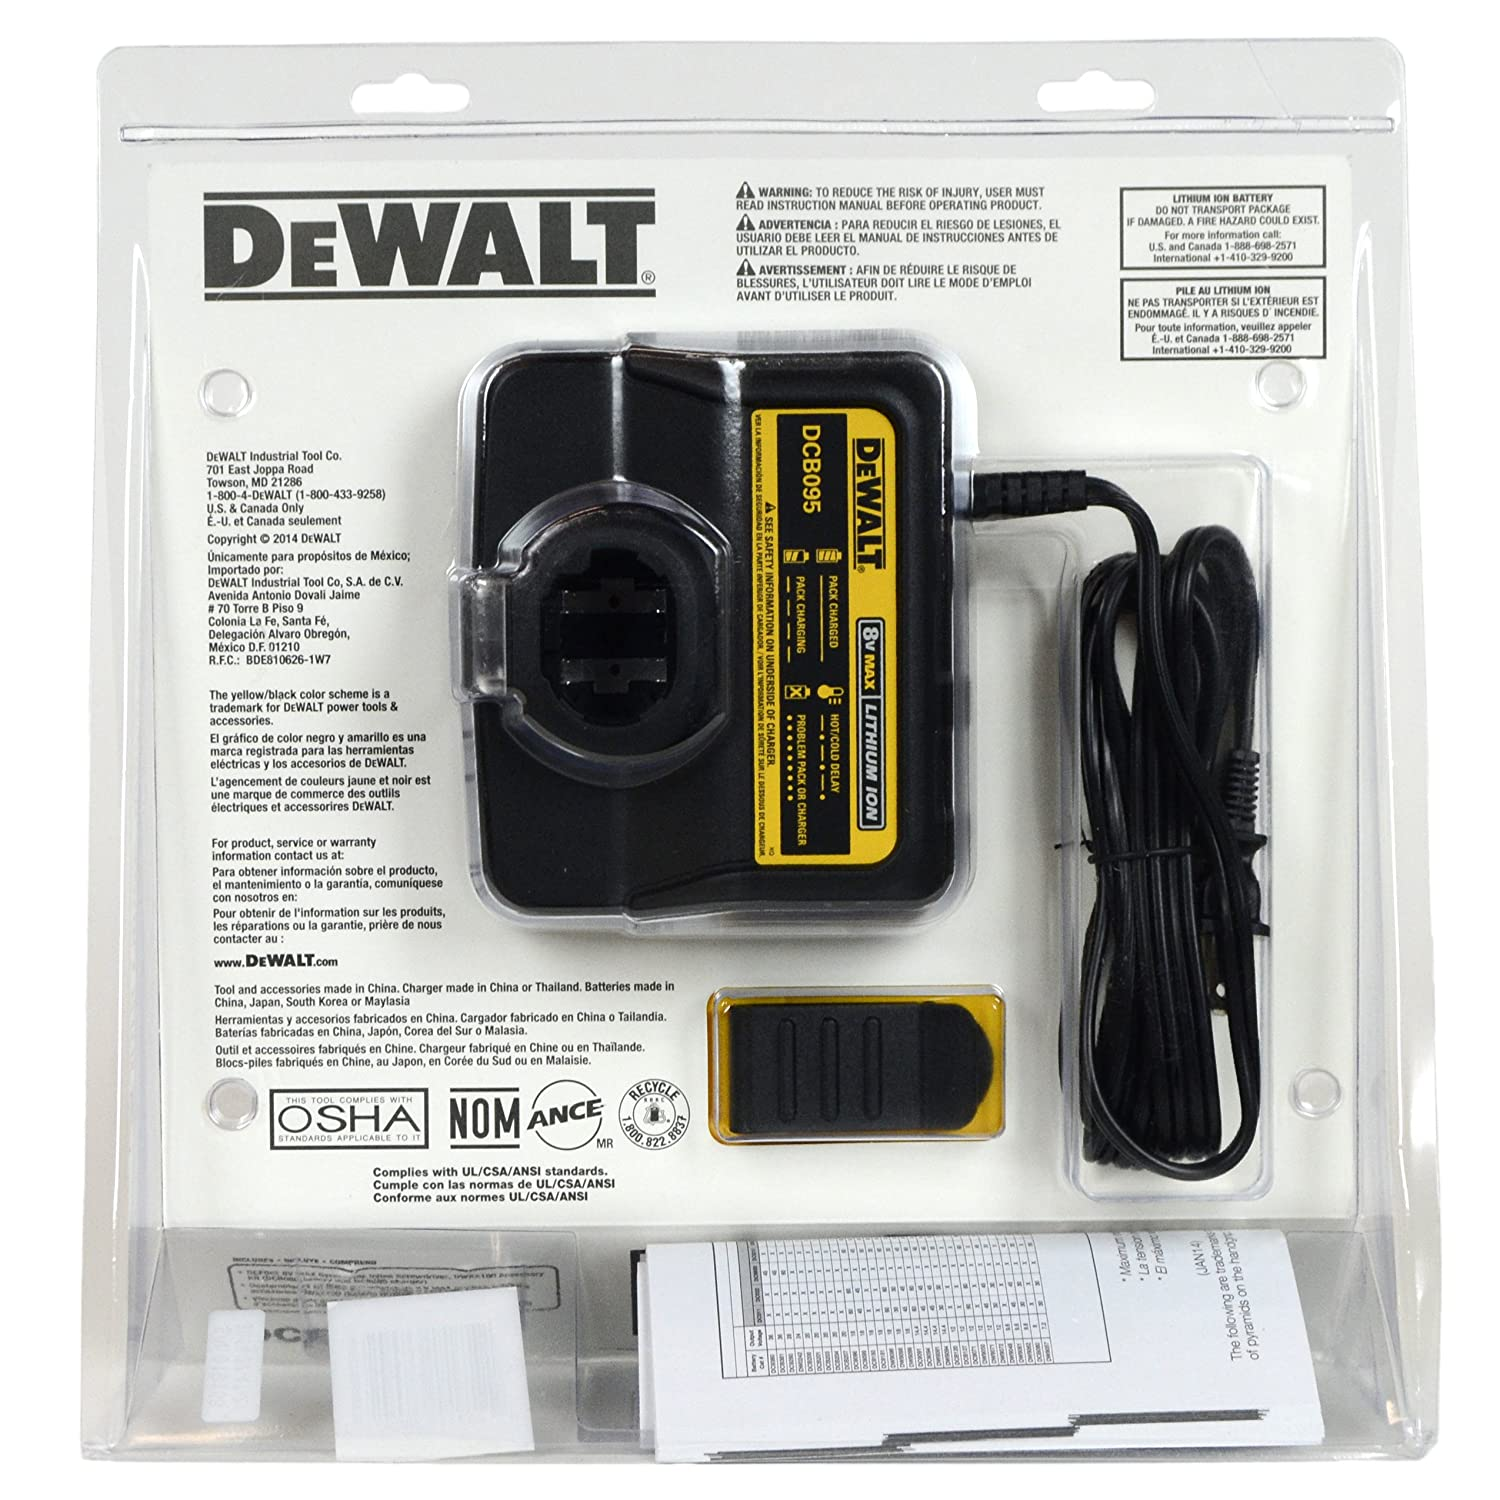 Dewalt DCF682N1A 8V Max Lith-ion 1/4 in. Cordless Gyroscopic Screwdriver in Retail Package